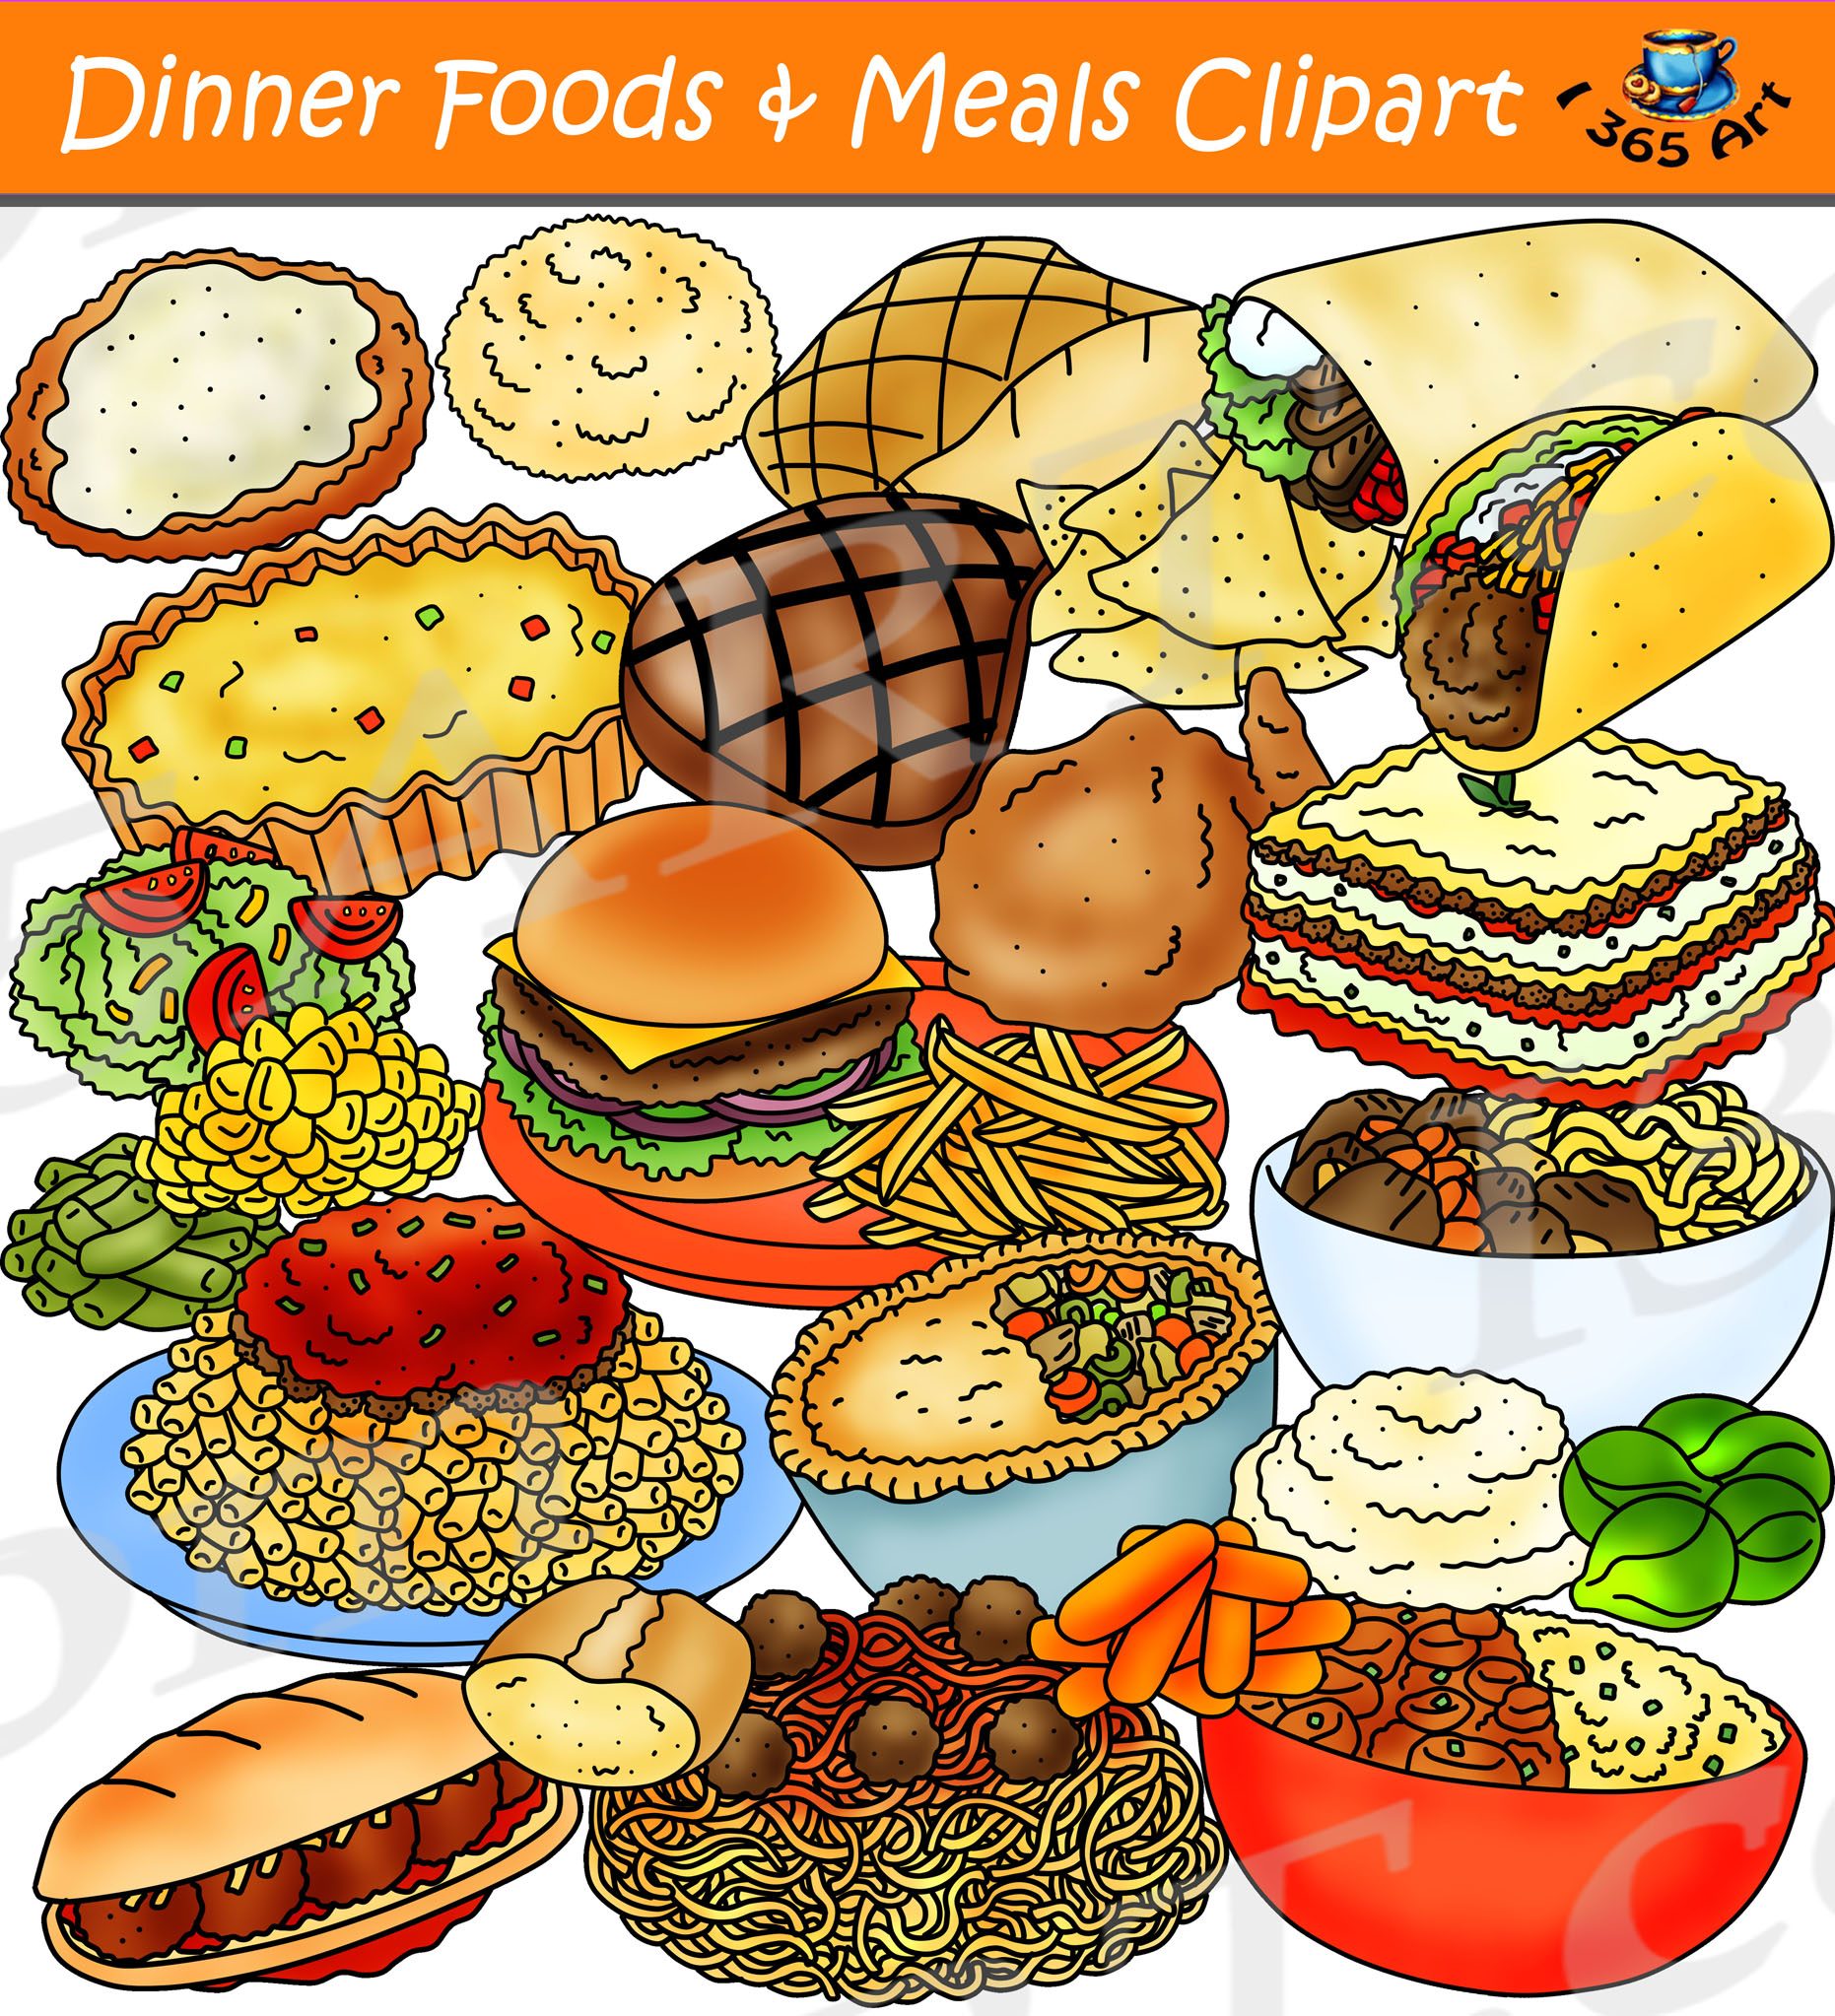 Dinner Foods Clipart - Dinner & Meals Clipart Download ...